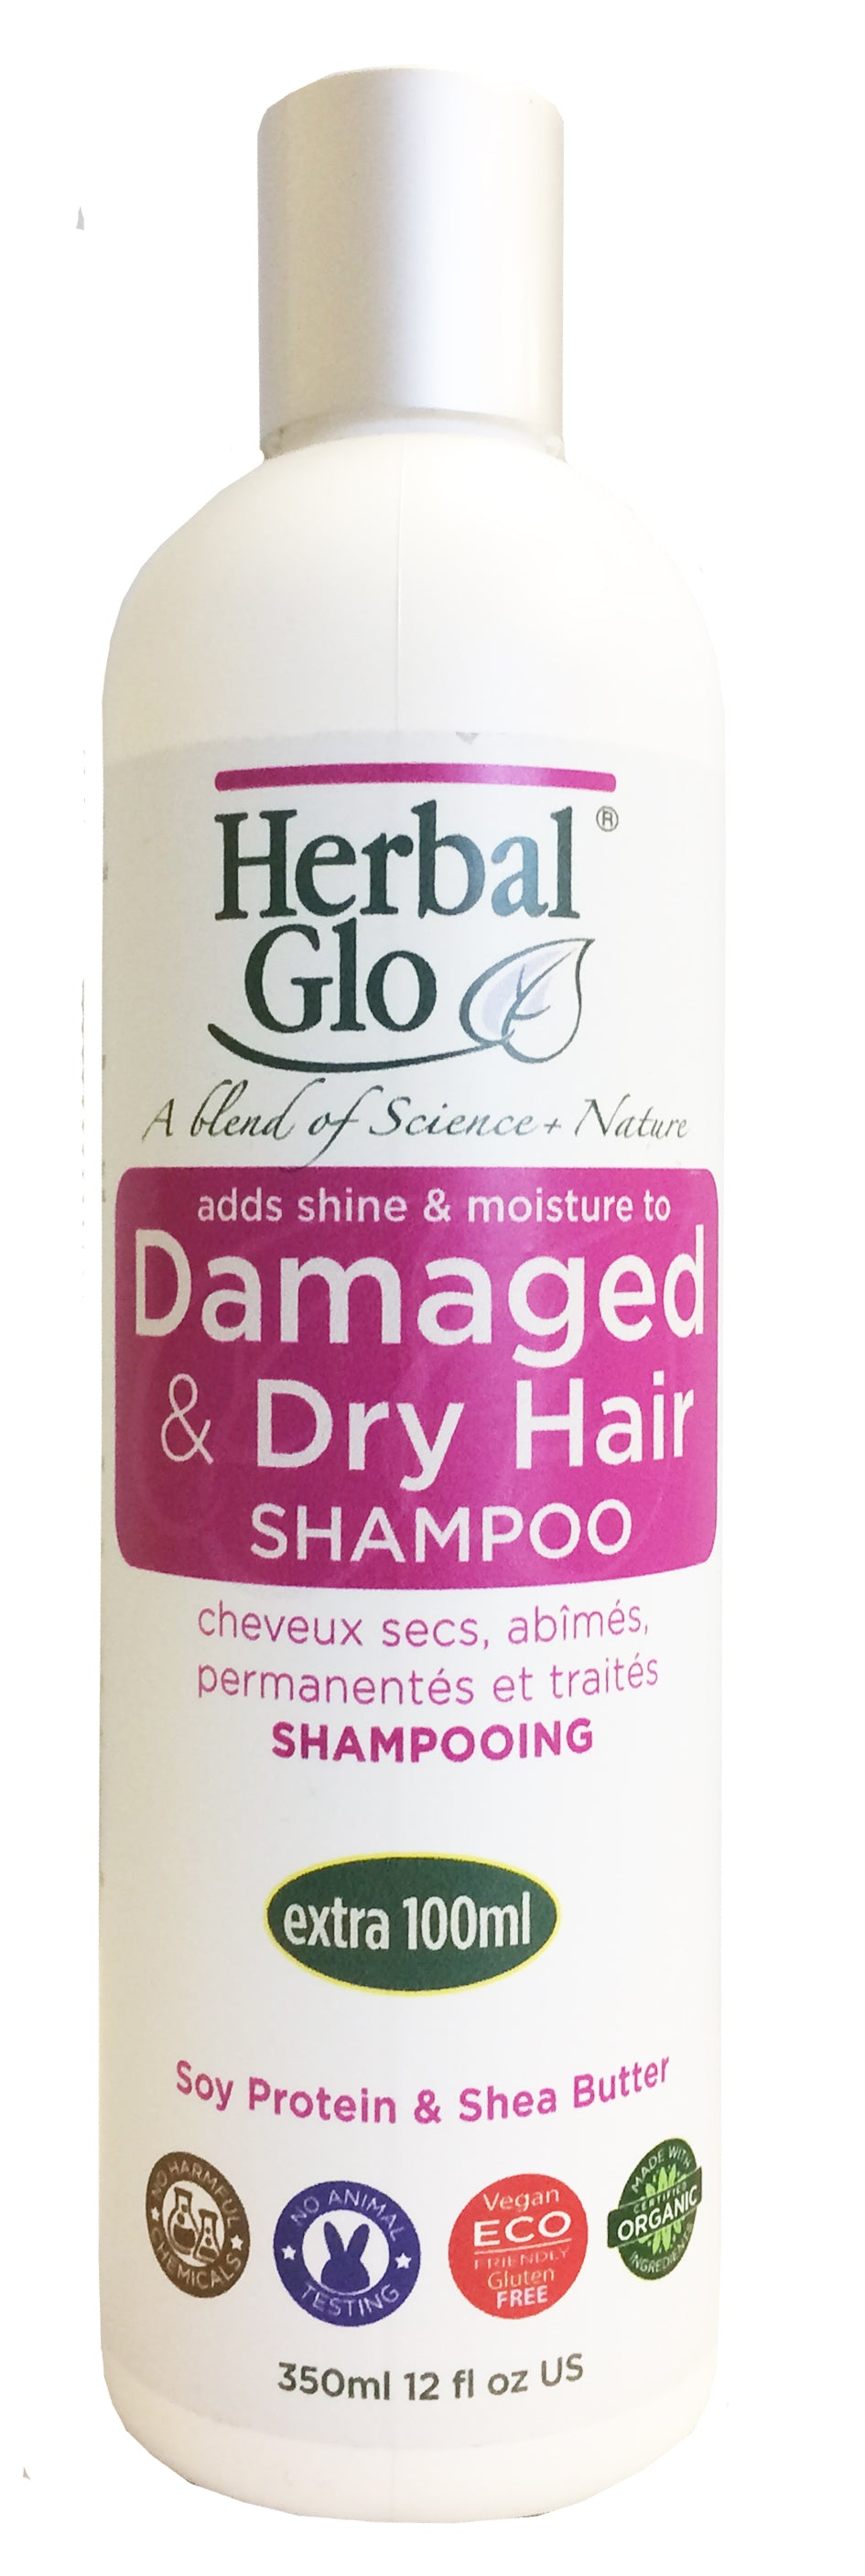 Shampoo, Dry/Damaged, 350ml